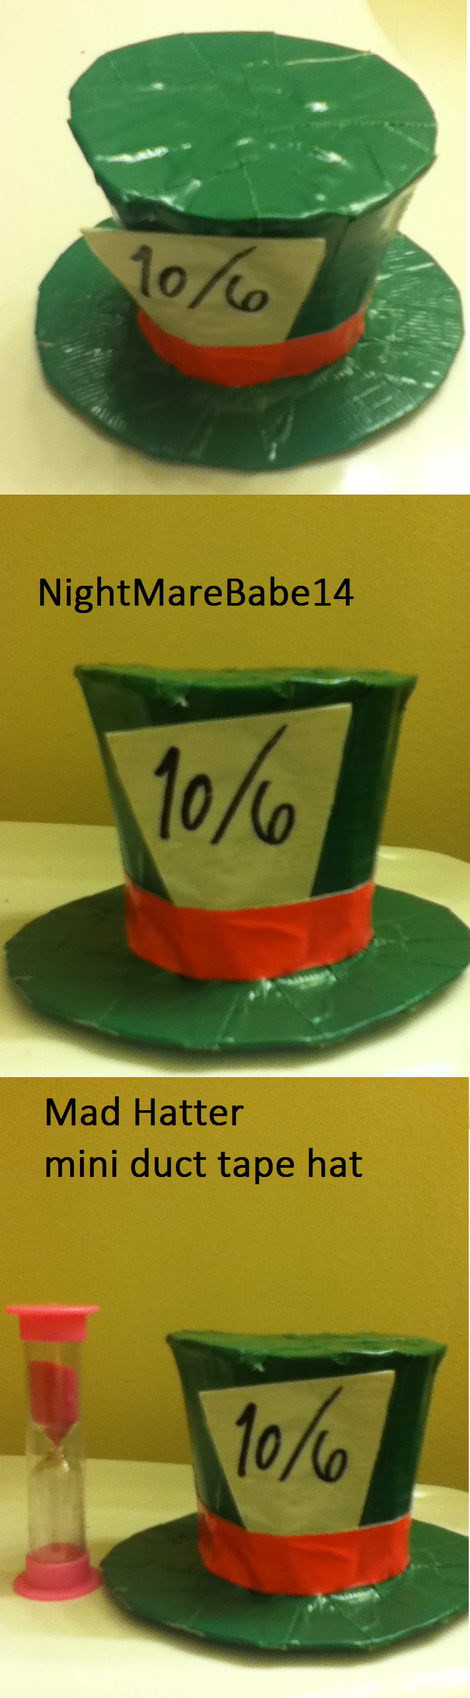 Mad hatter mini duct tape hat by nightmarebabe14 on deviantart for Mini duct tape crafts